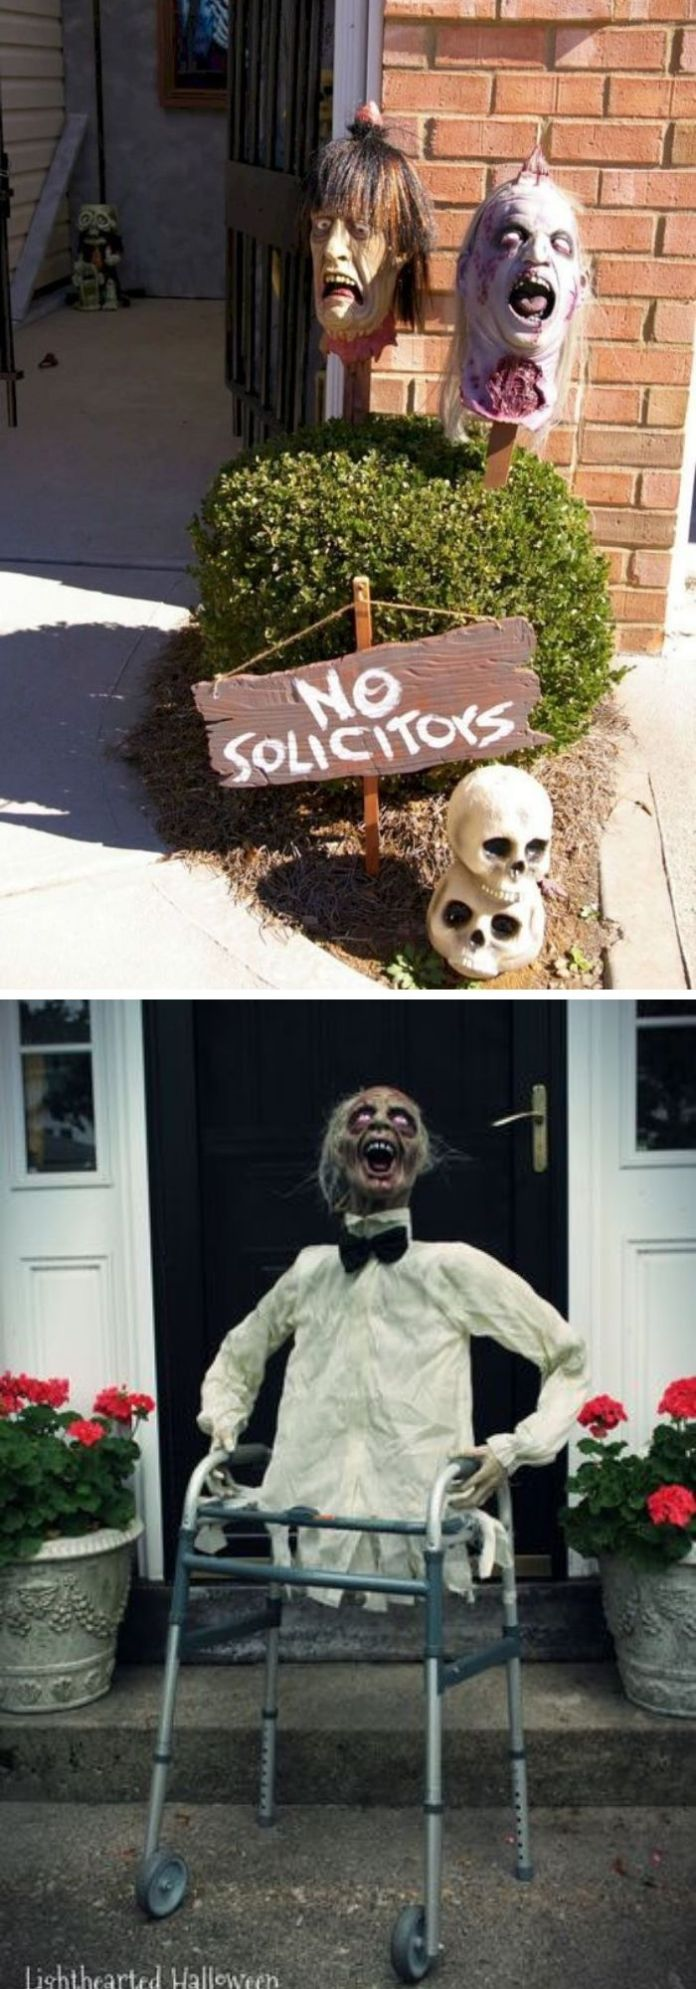 27 Spooky Halloween Entrance Ideas You Can Try 2020